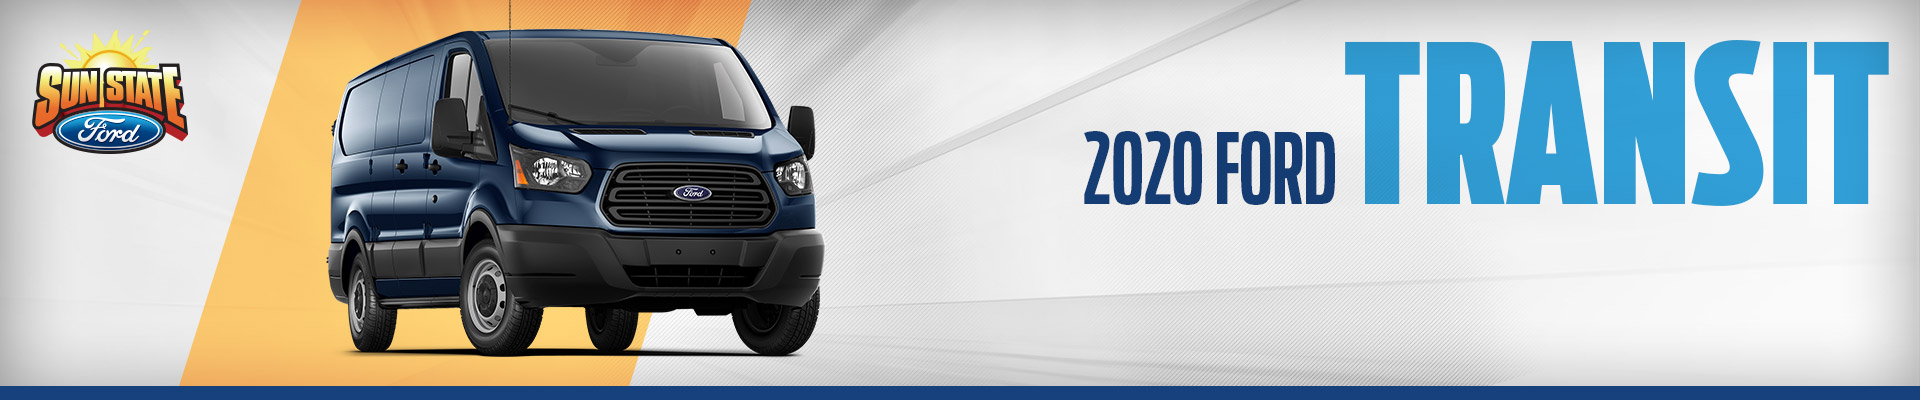 2020 Ford Transit - Sun State Ford - Orlando, FL